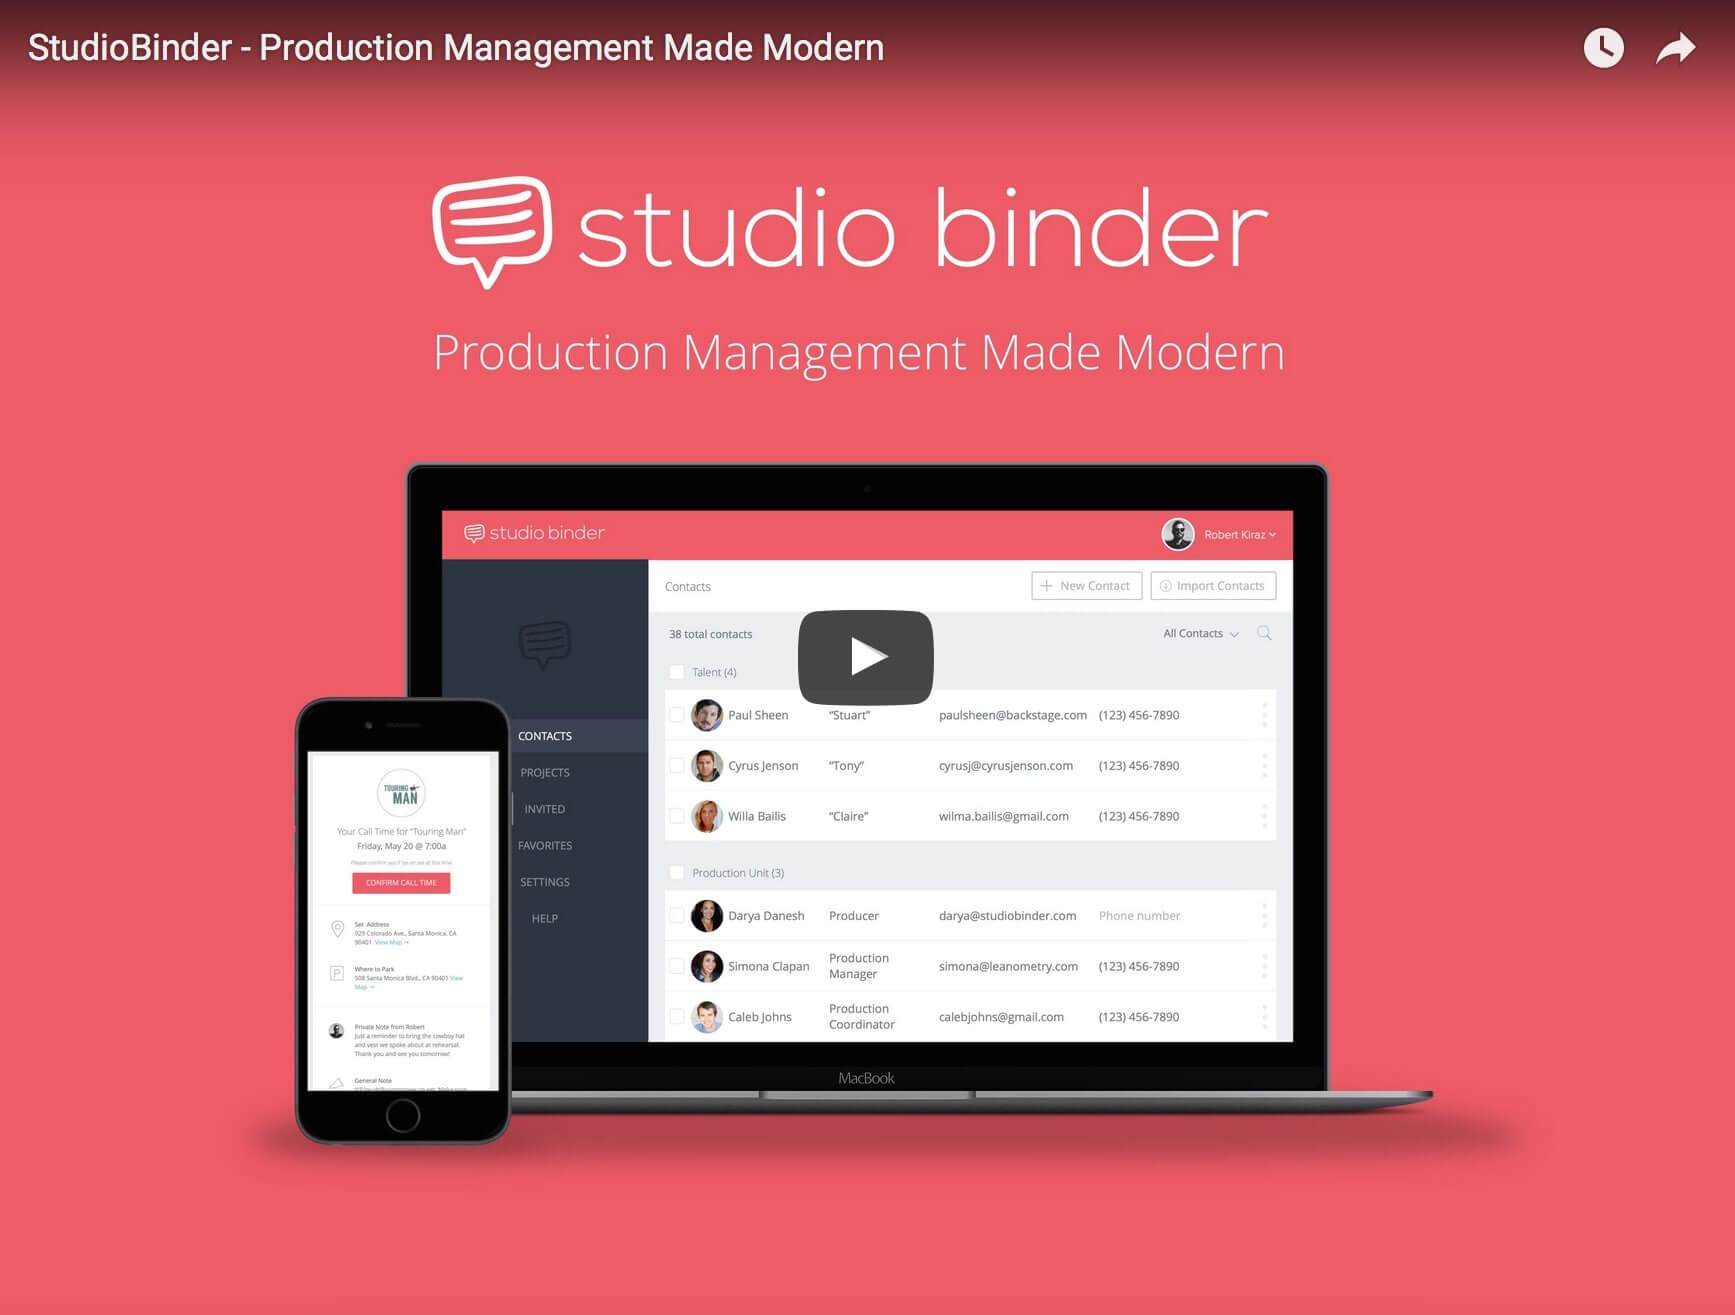 film-production-management-made-modern-studiobinder